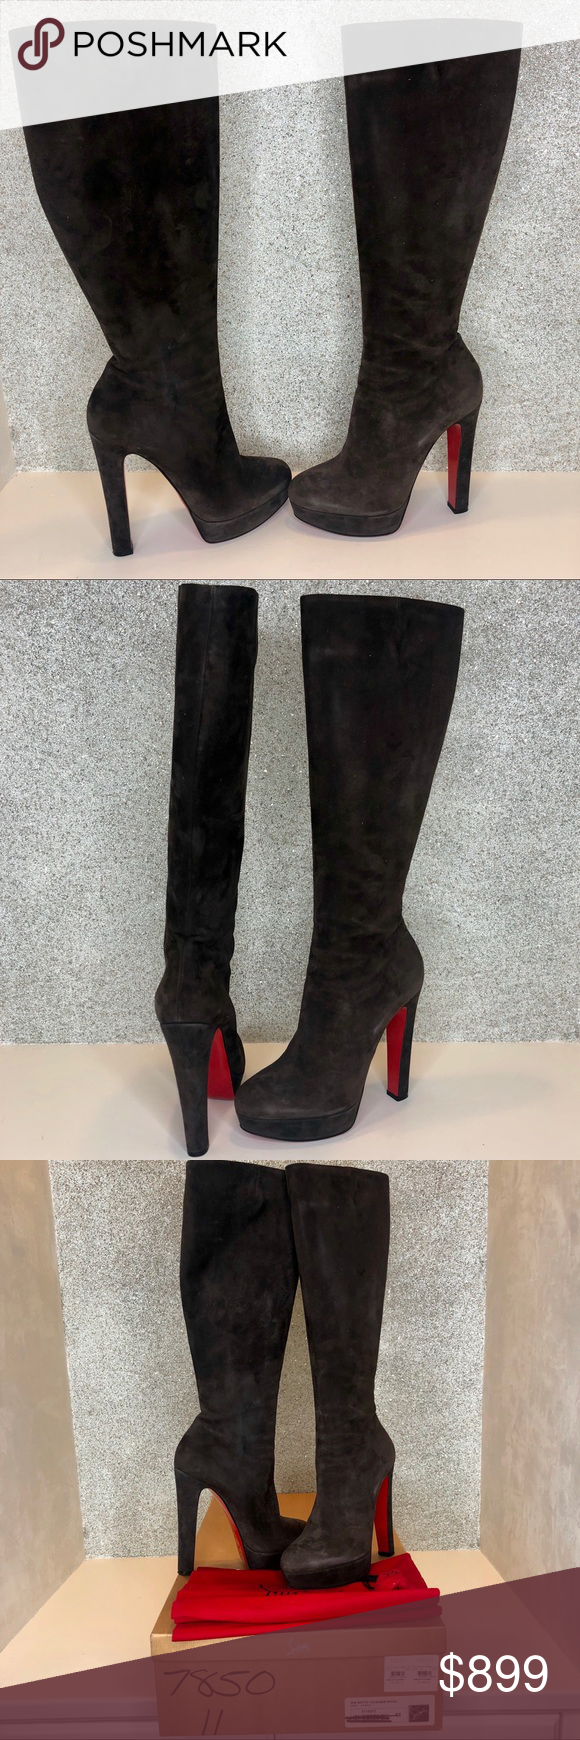 on sale cd3b2 7d95e Spotted while shopping on Poshmark: Louboutin BIBI BOTTA 140 ...